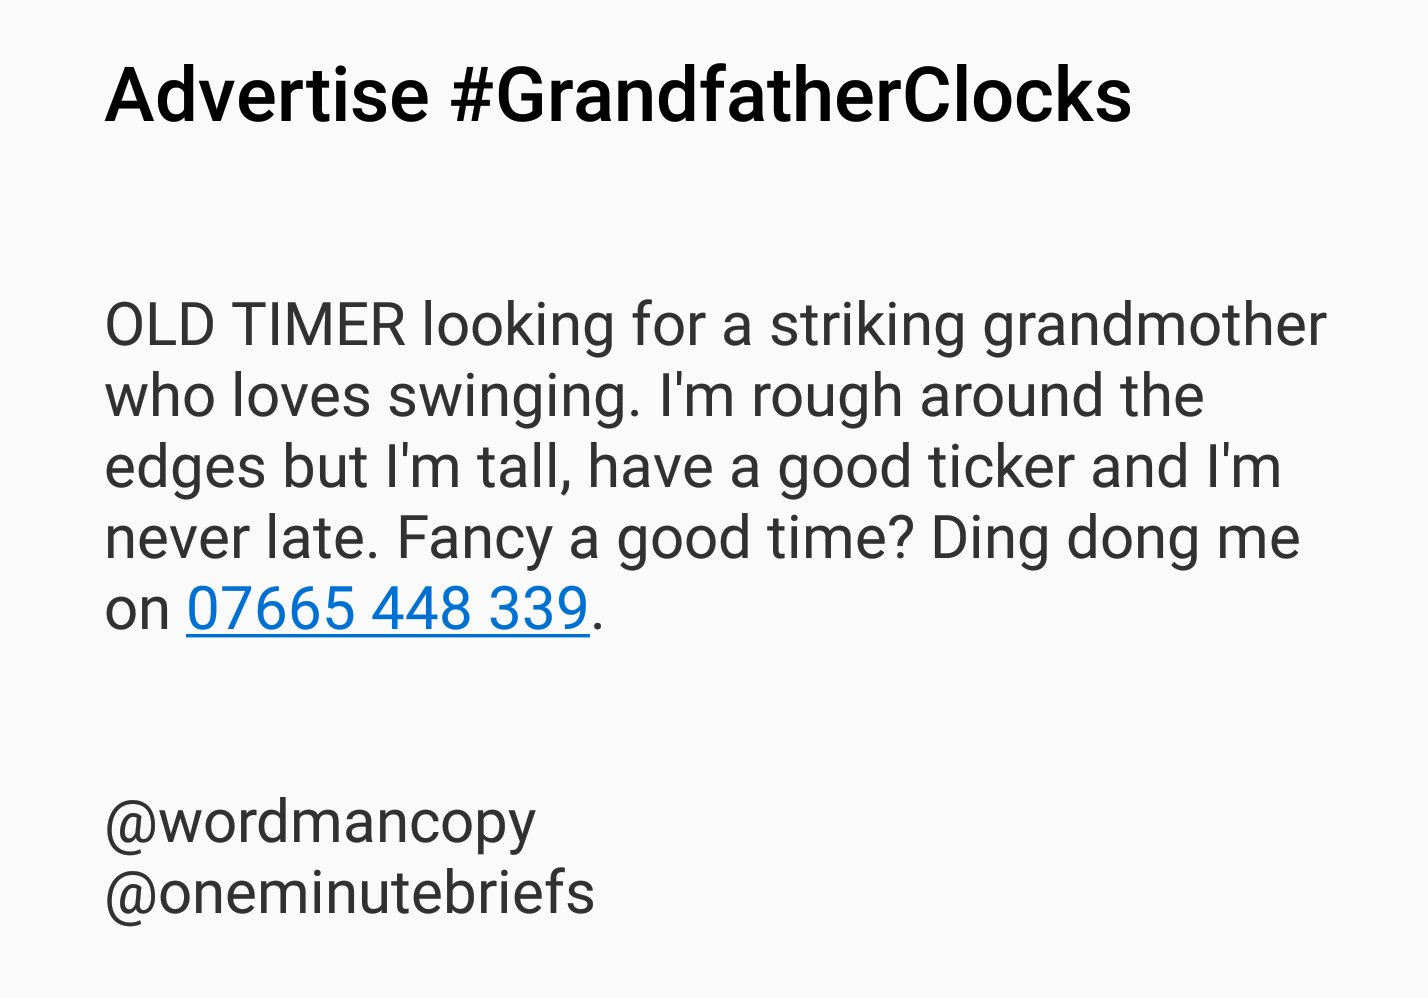 omb-grandfatherclocks